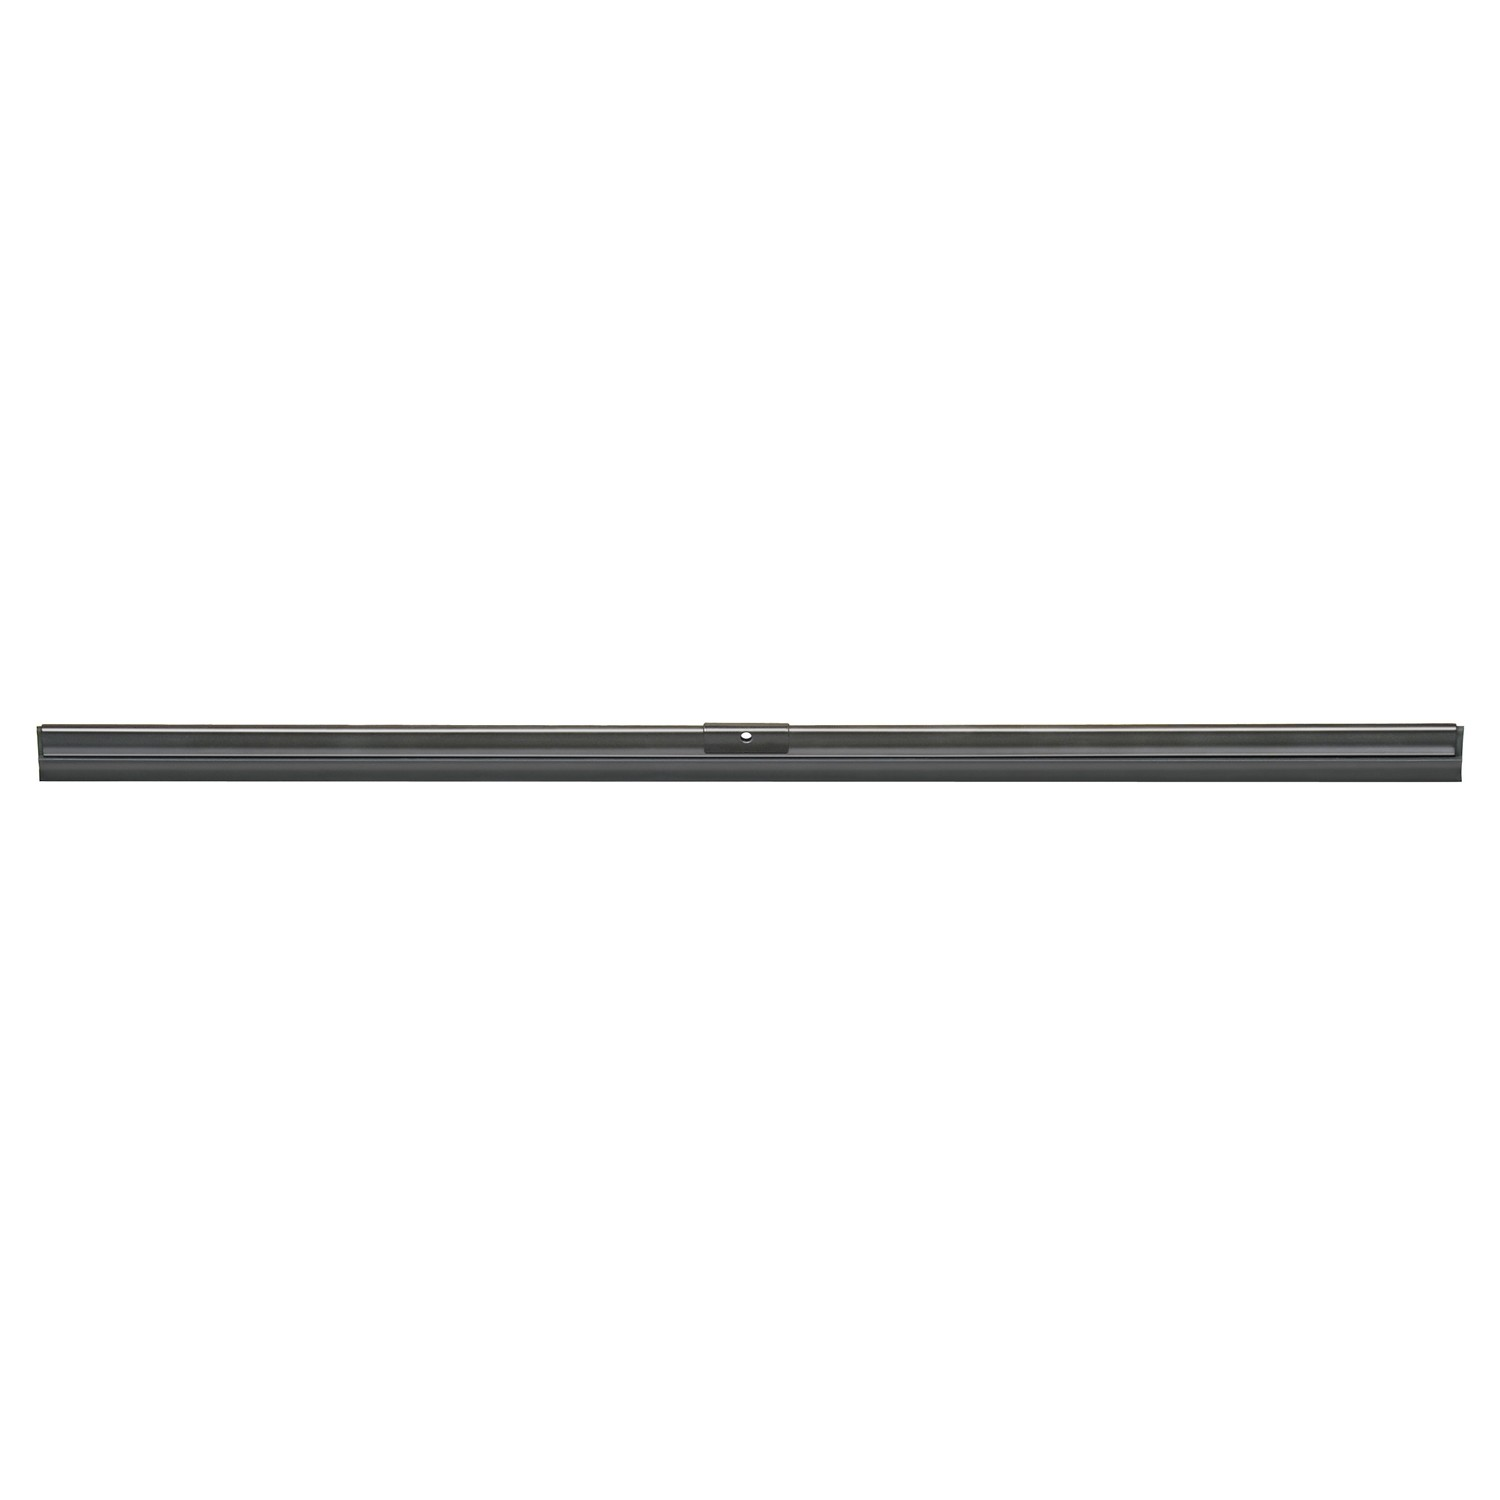 ACDELCO PROFESSIONAL - Windshield Wiper Blade - DCC 8-7111